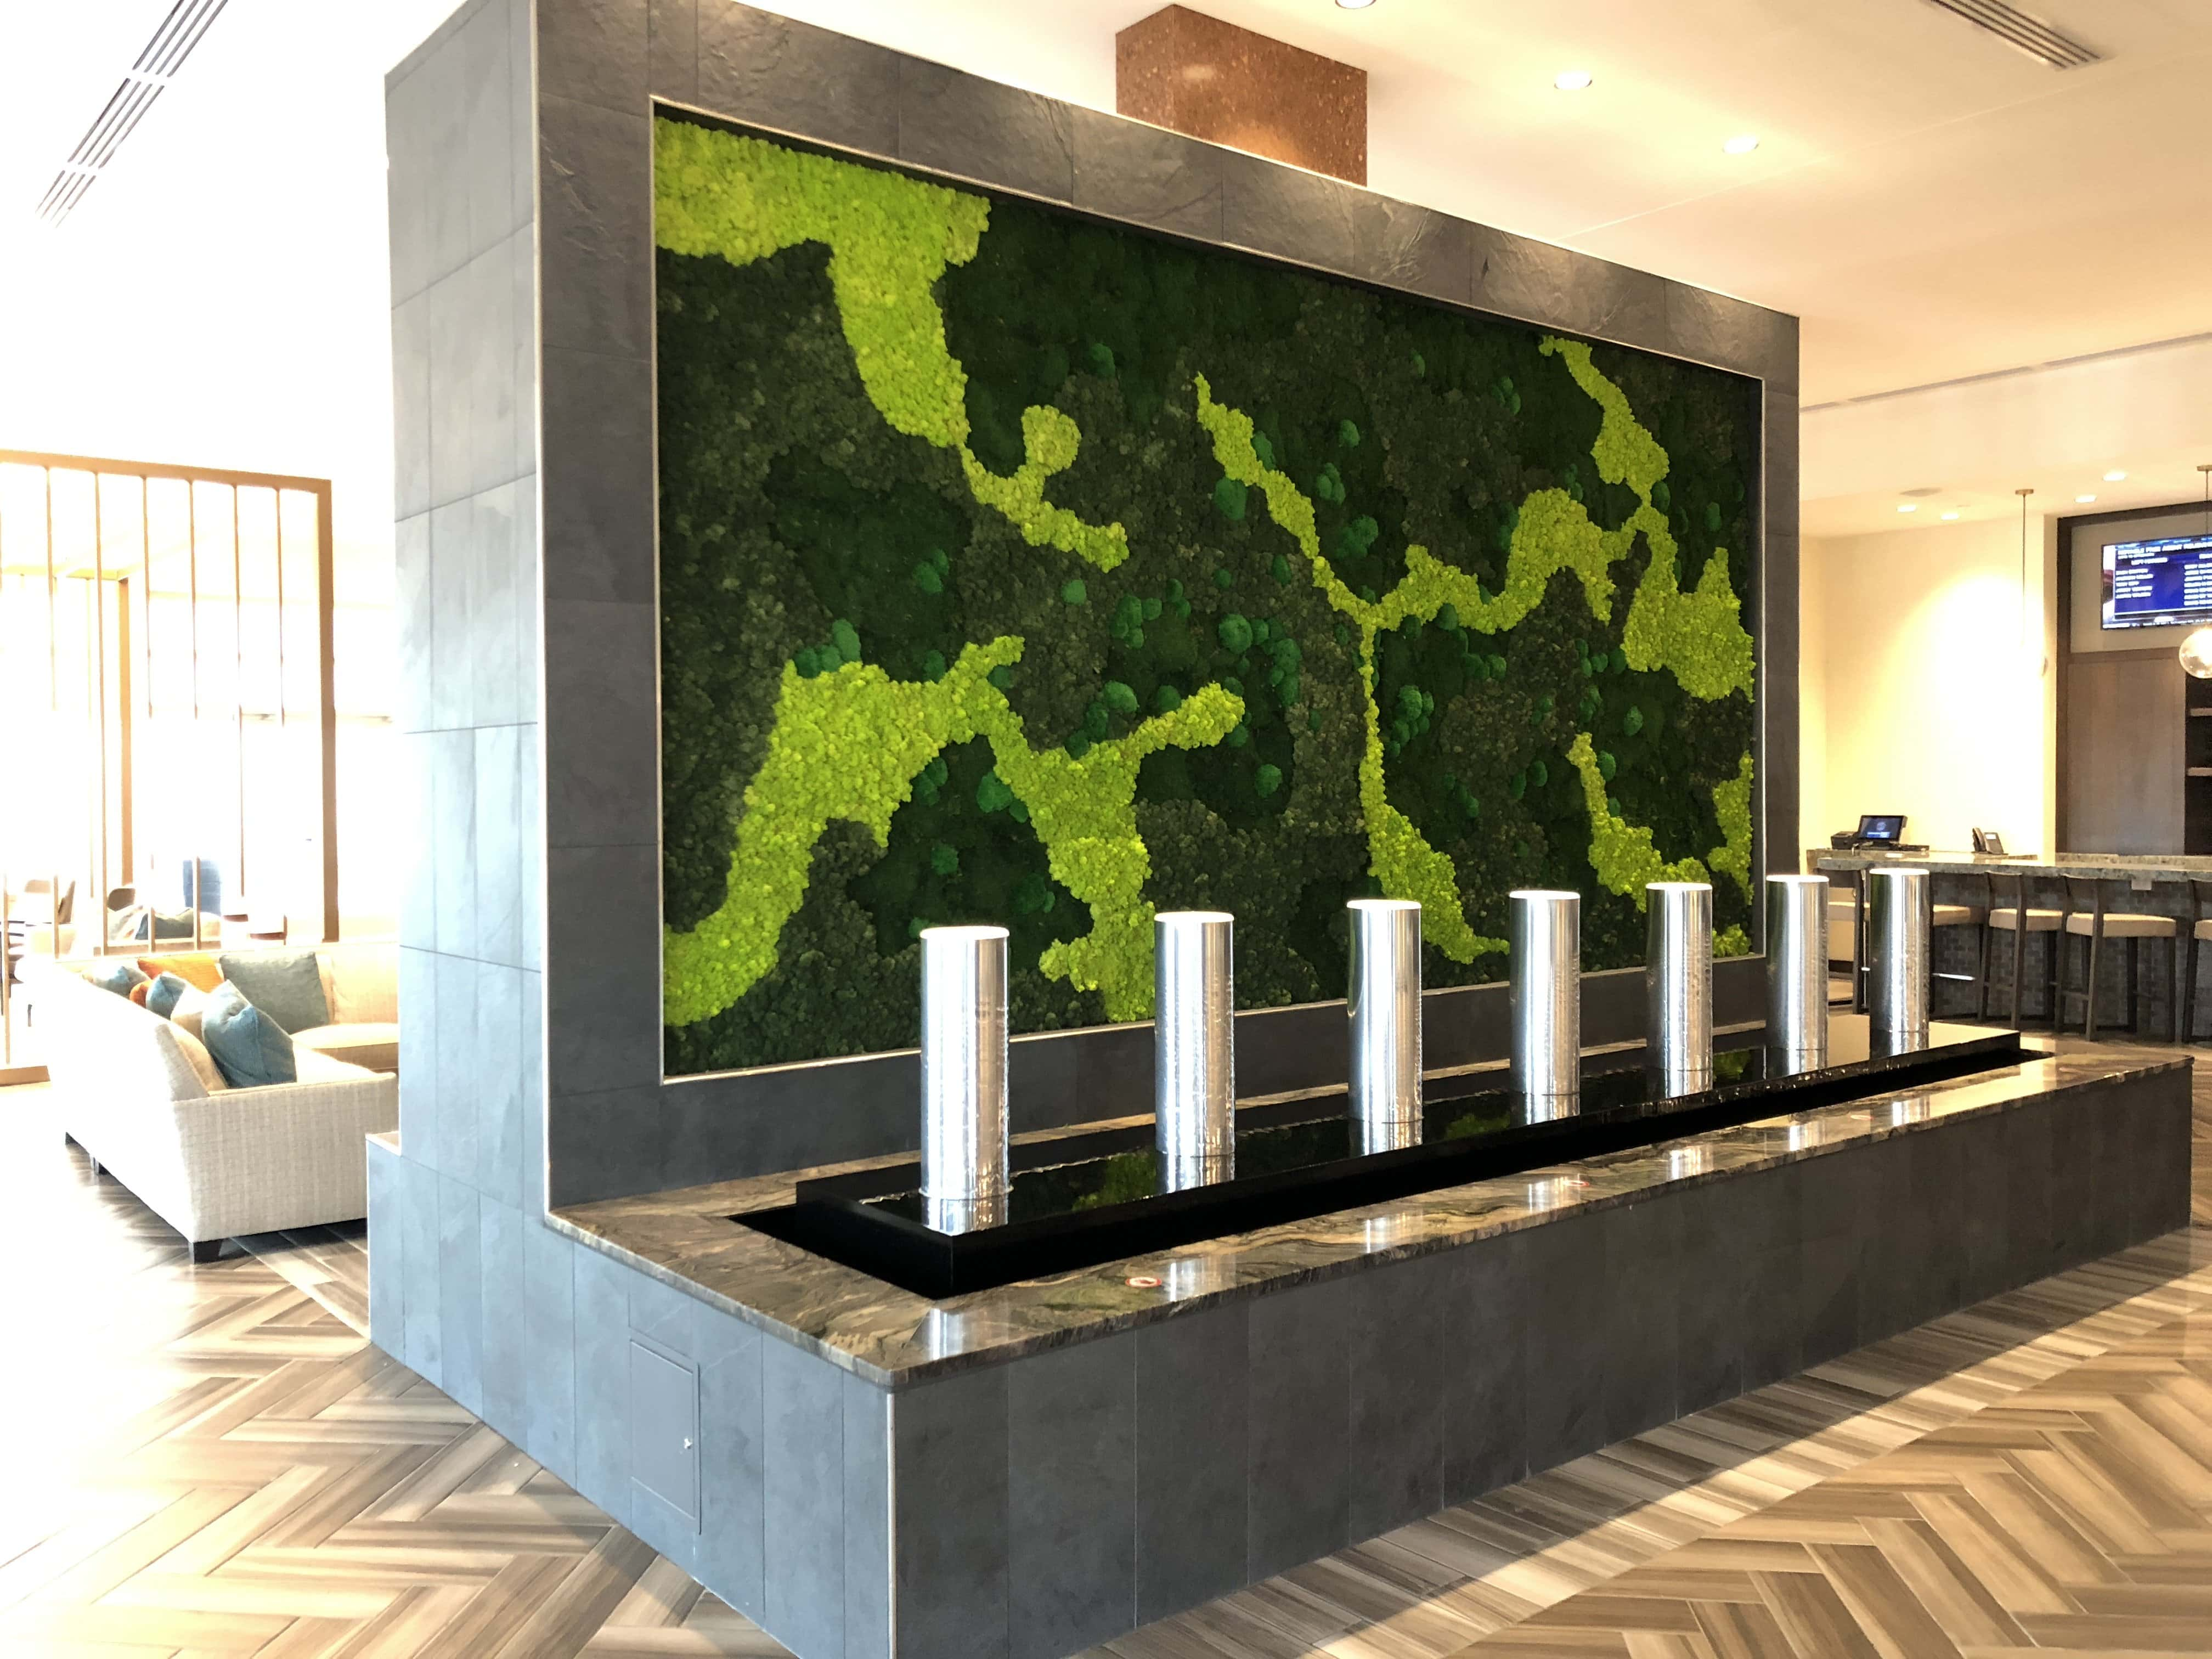 Moss Wall at Embassy Suites Landmark by Natura